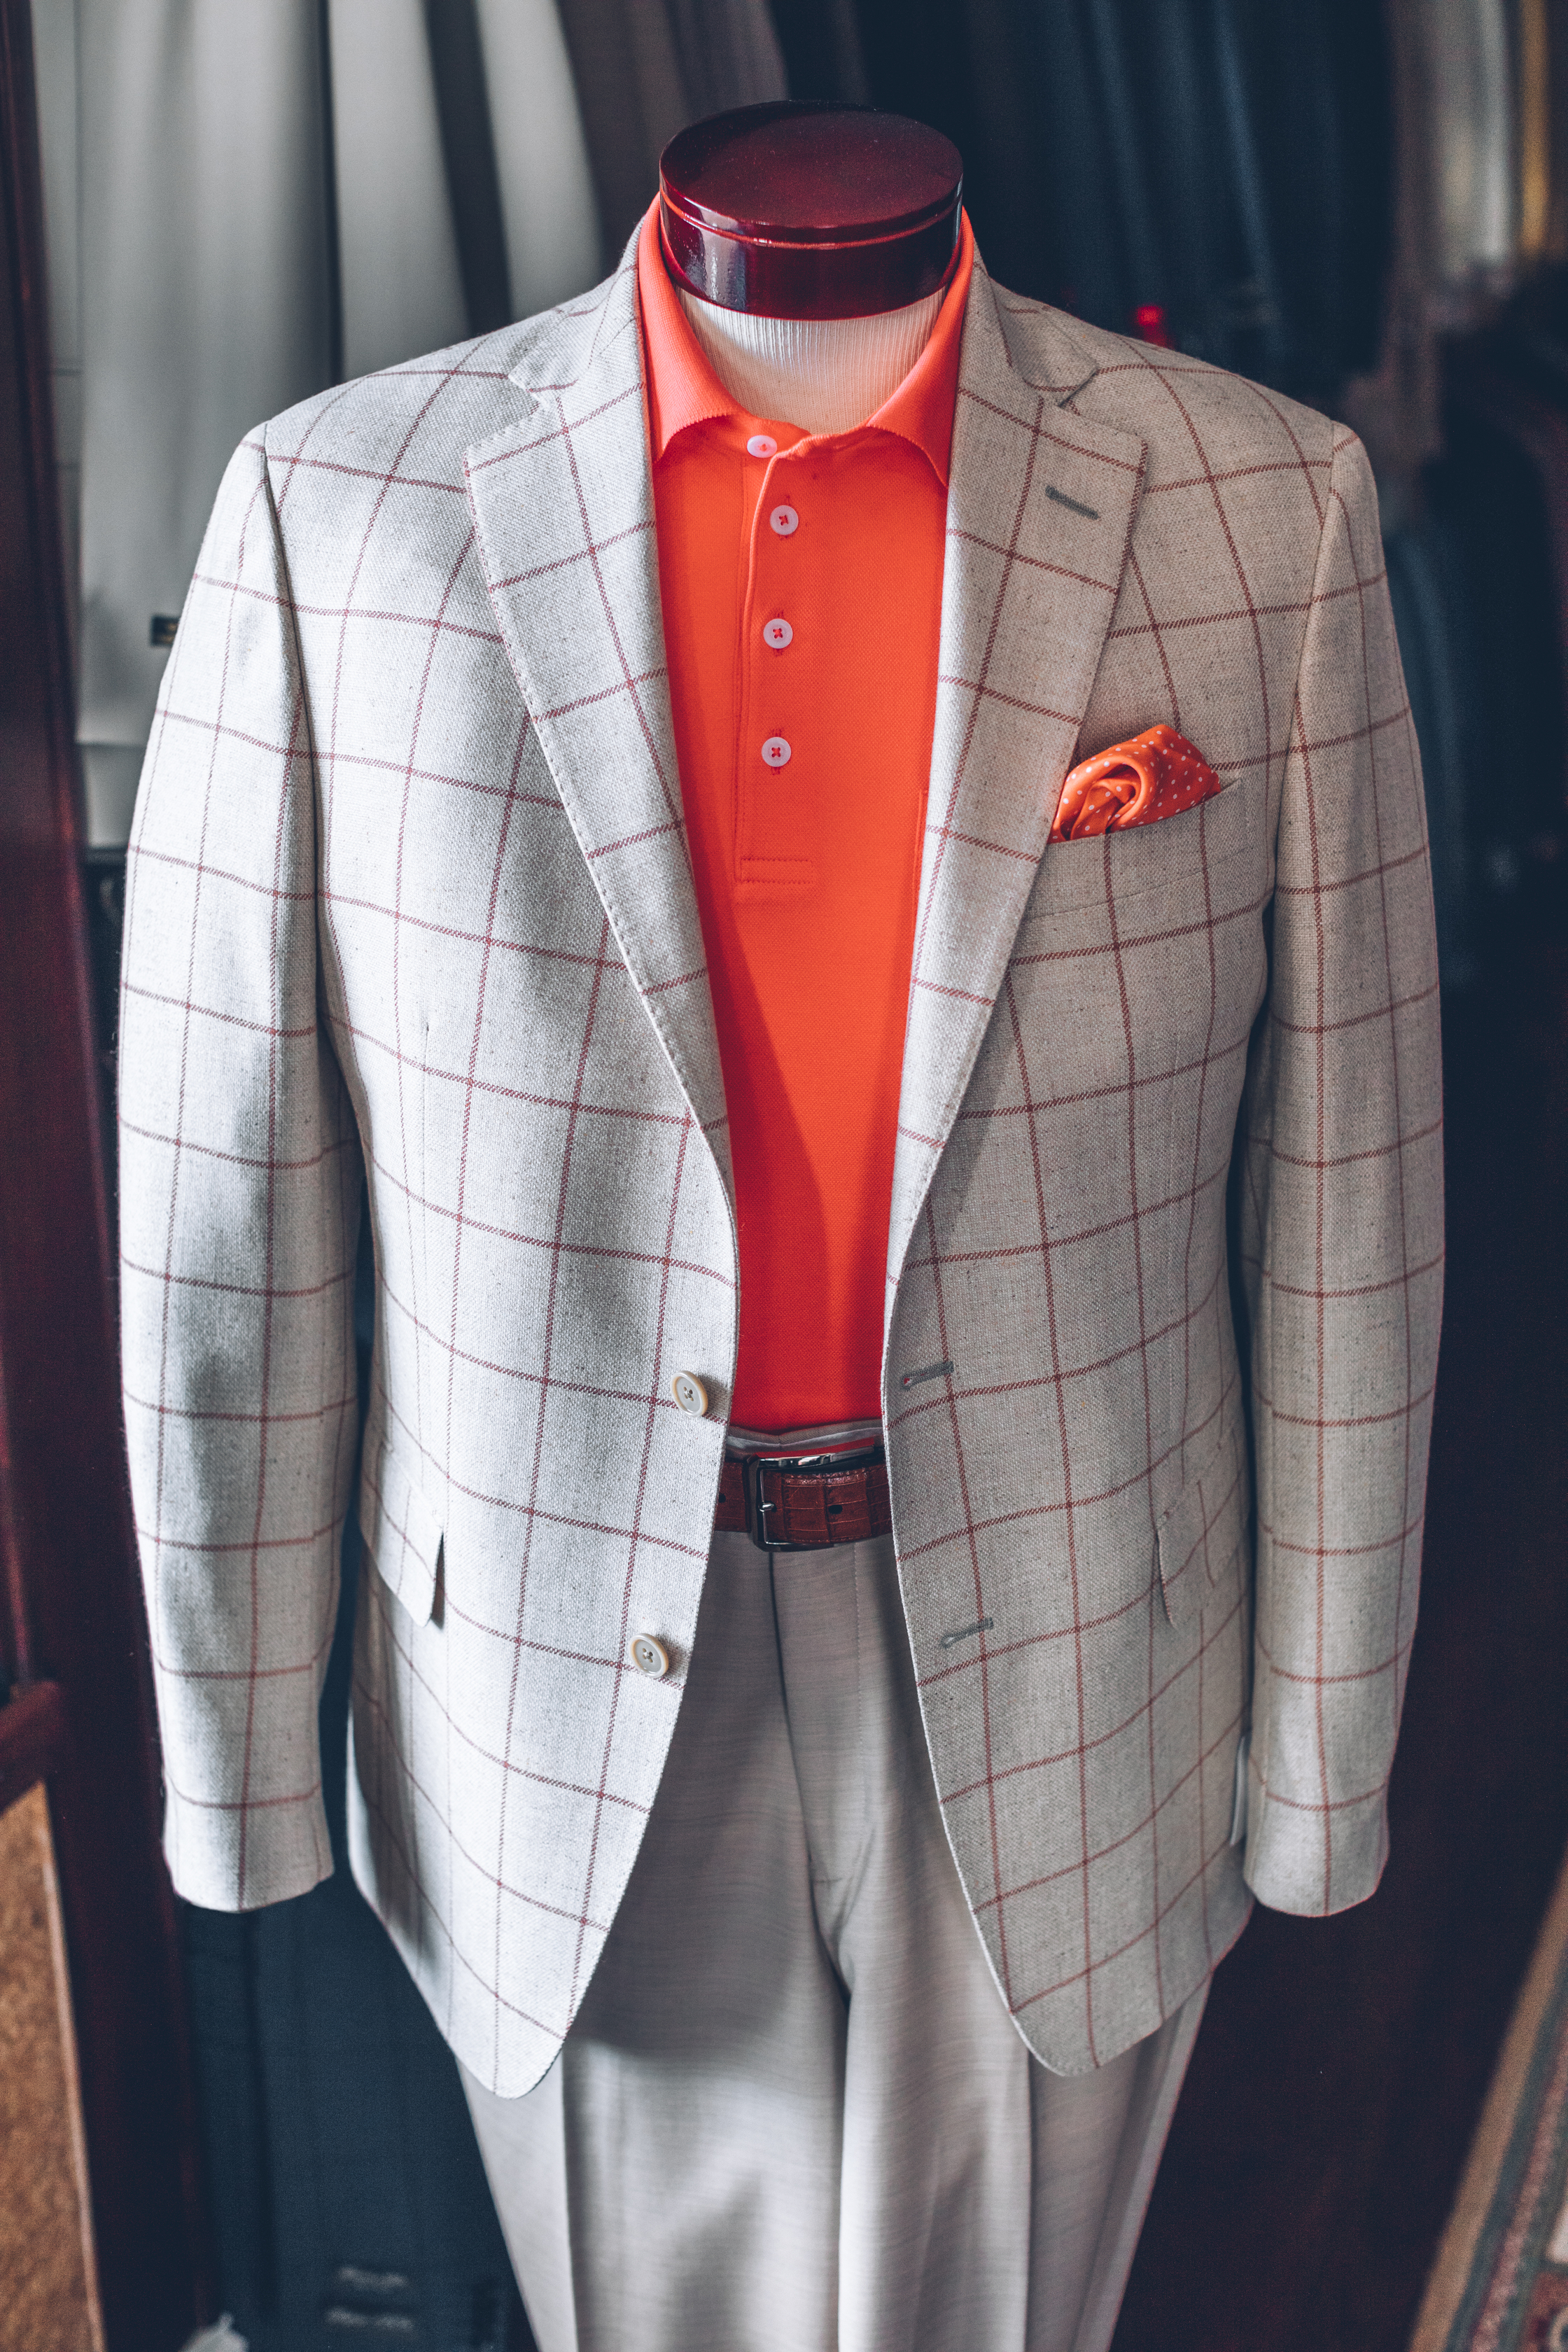 Men's Bespoke Suits